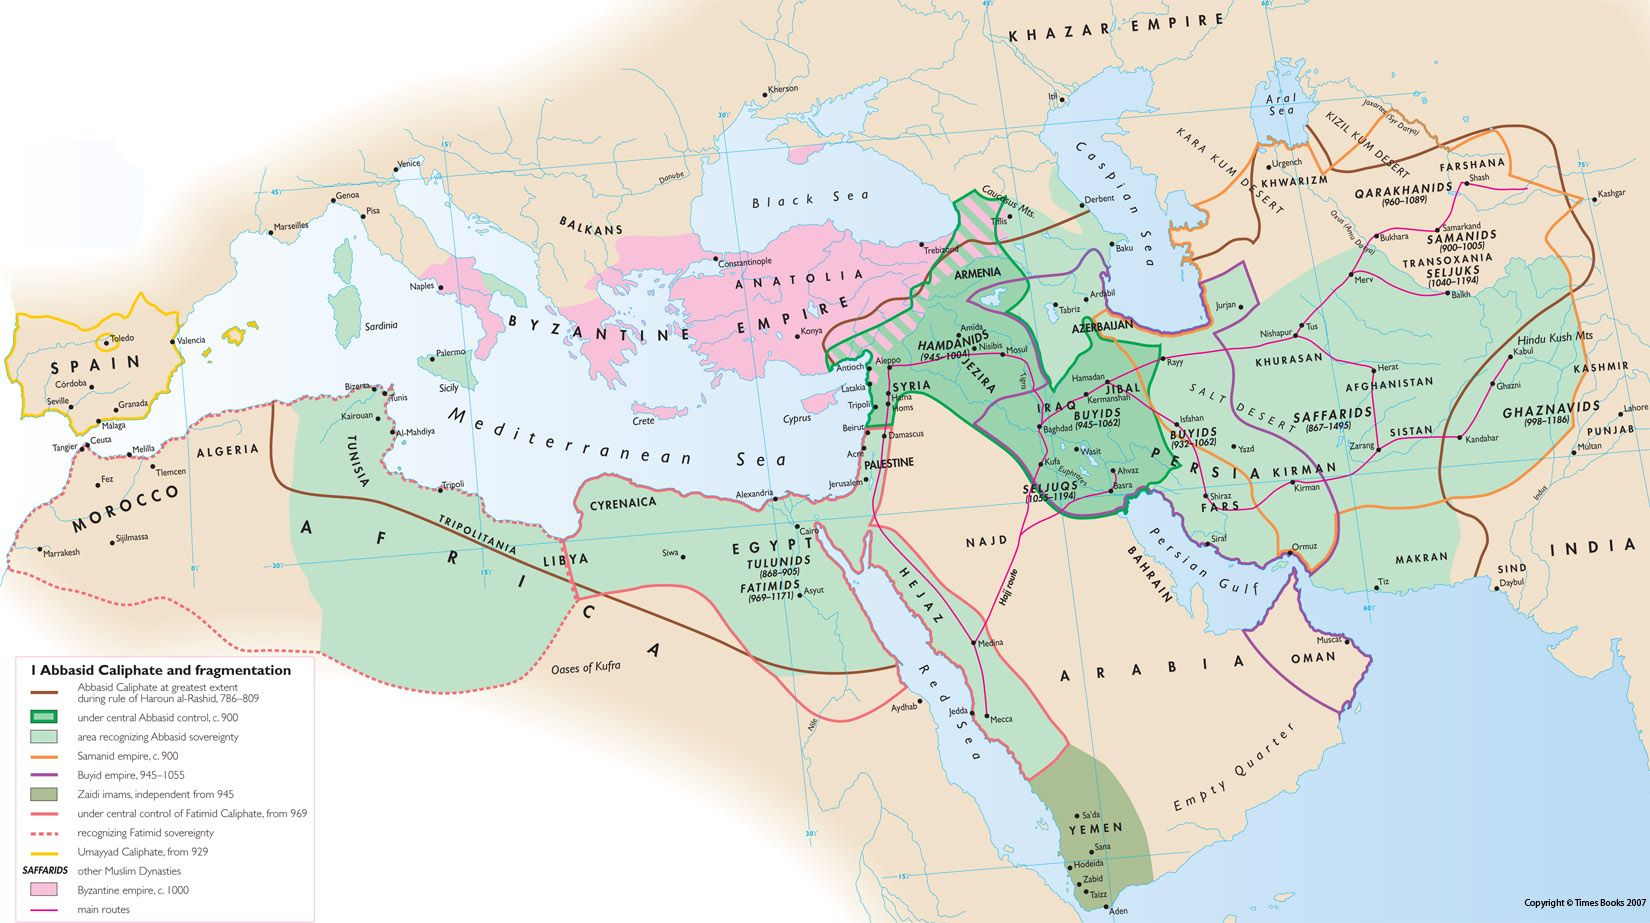 umayyad and abbasid caliphates comparison The umayyad and abbasid empires which led to the rashidun and umayyad caliphates and the rapid expansion of muslim power over the next century.